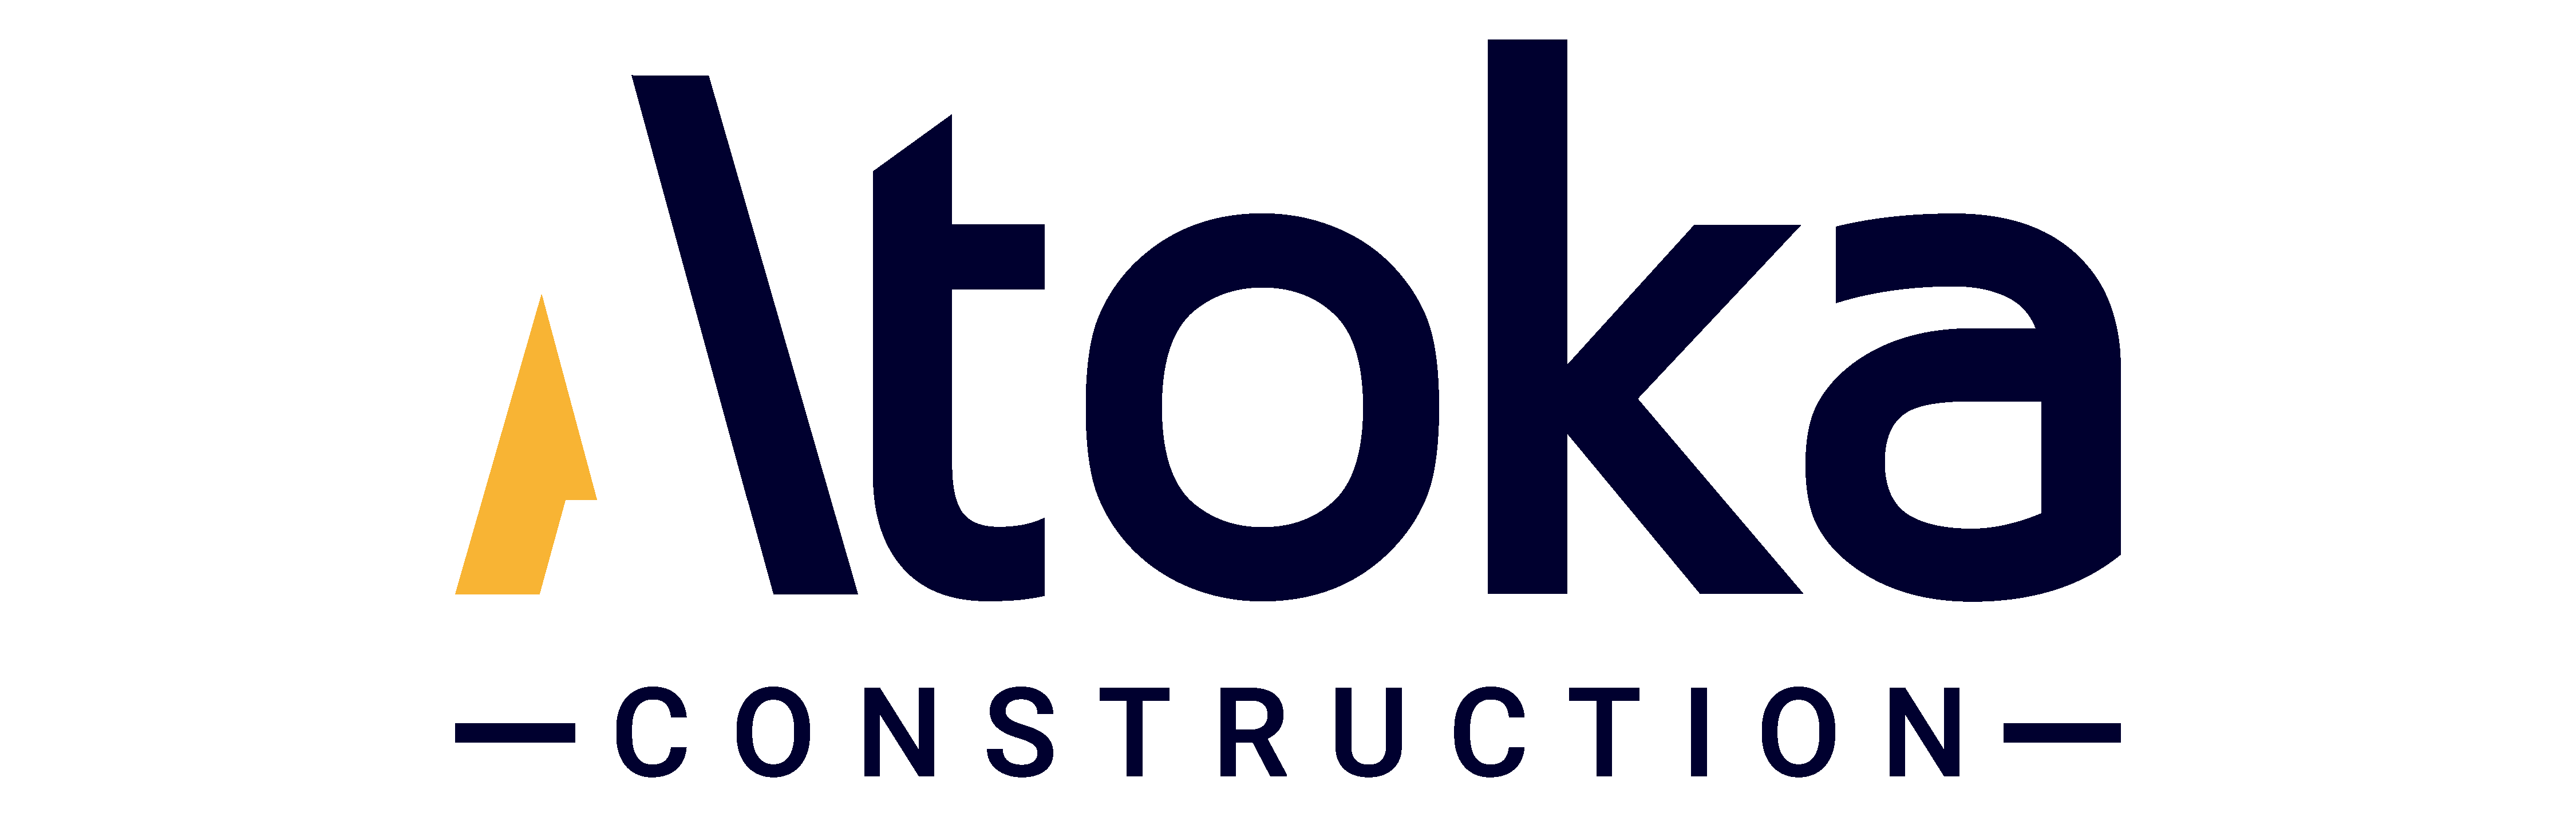 Atoka Construction